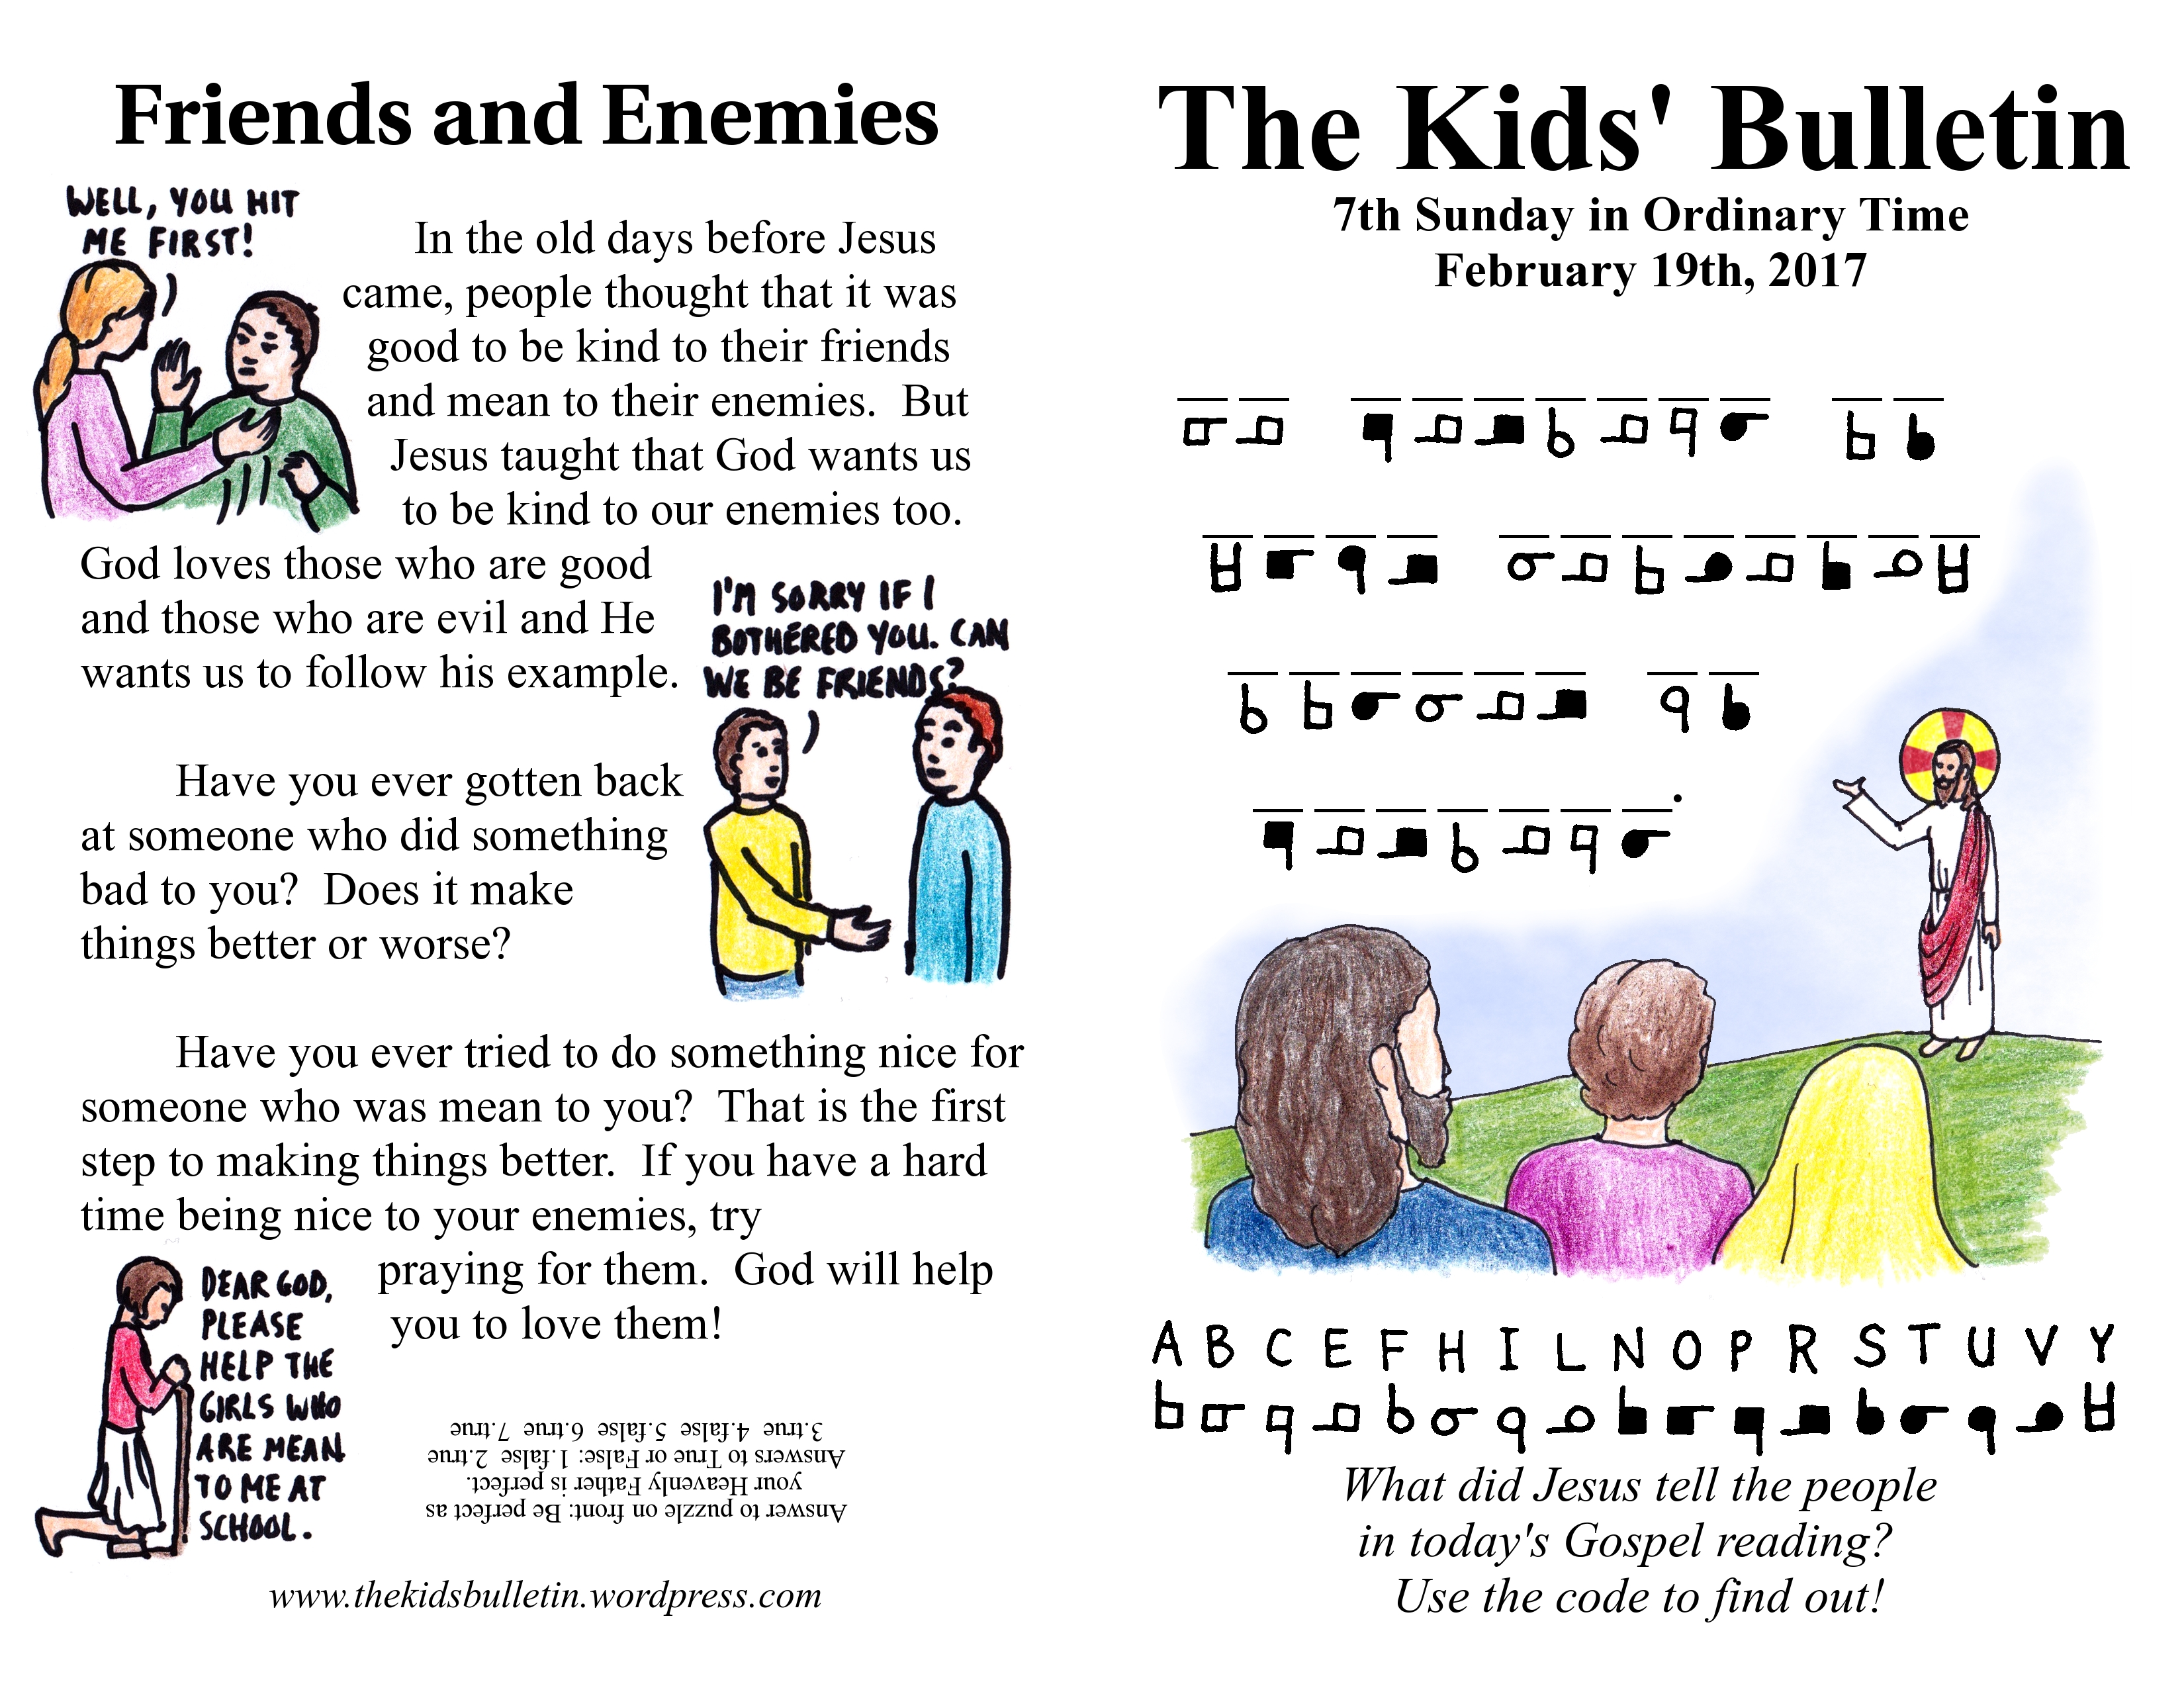 The Kids Bulletin For Sunday February 19th